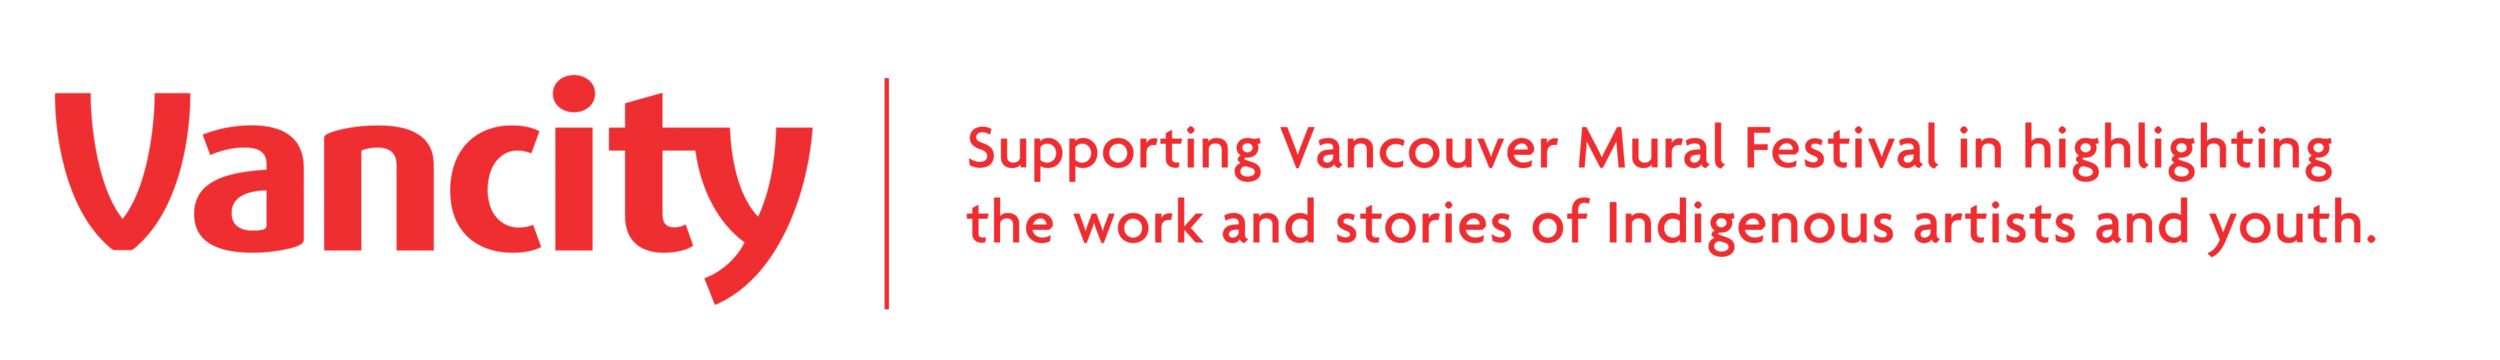 Uplifting Indigenous voices Vancity.png